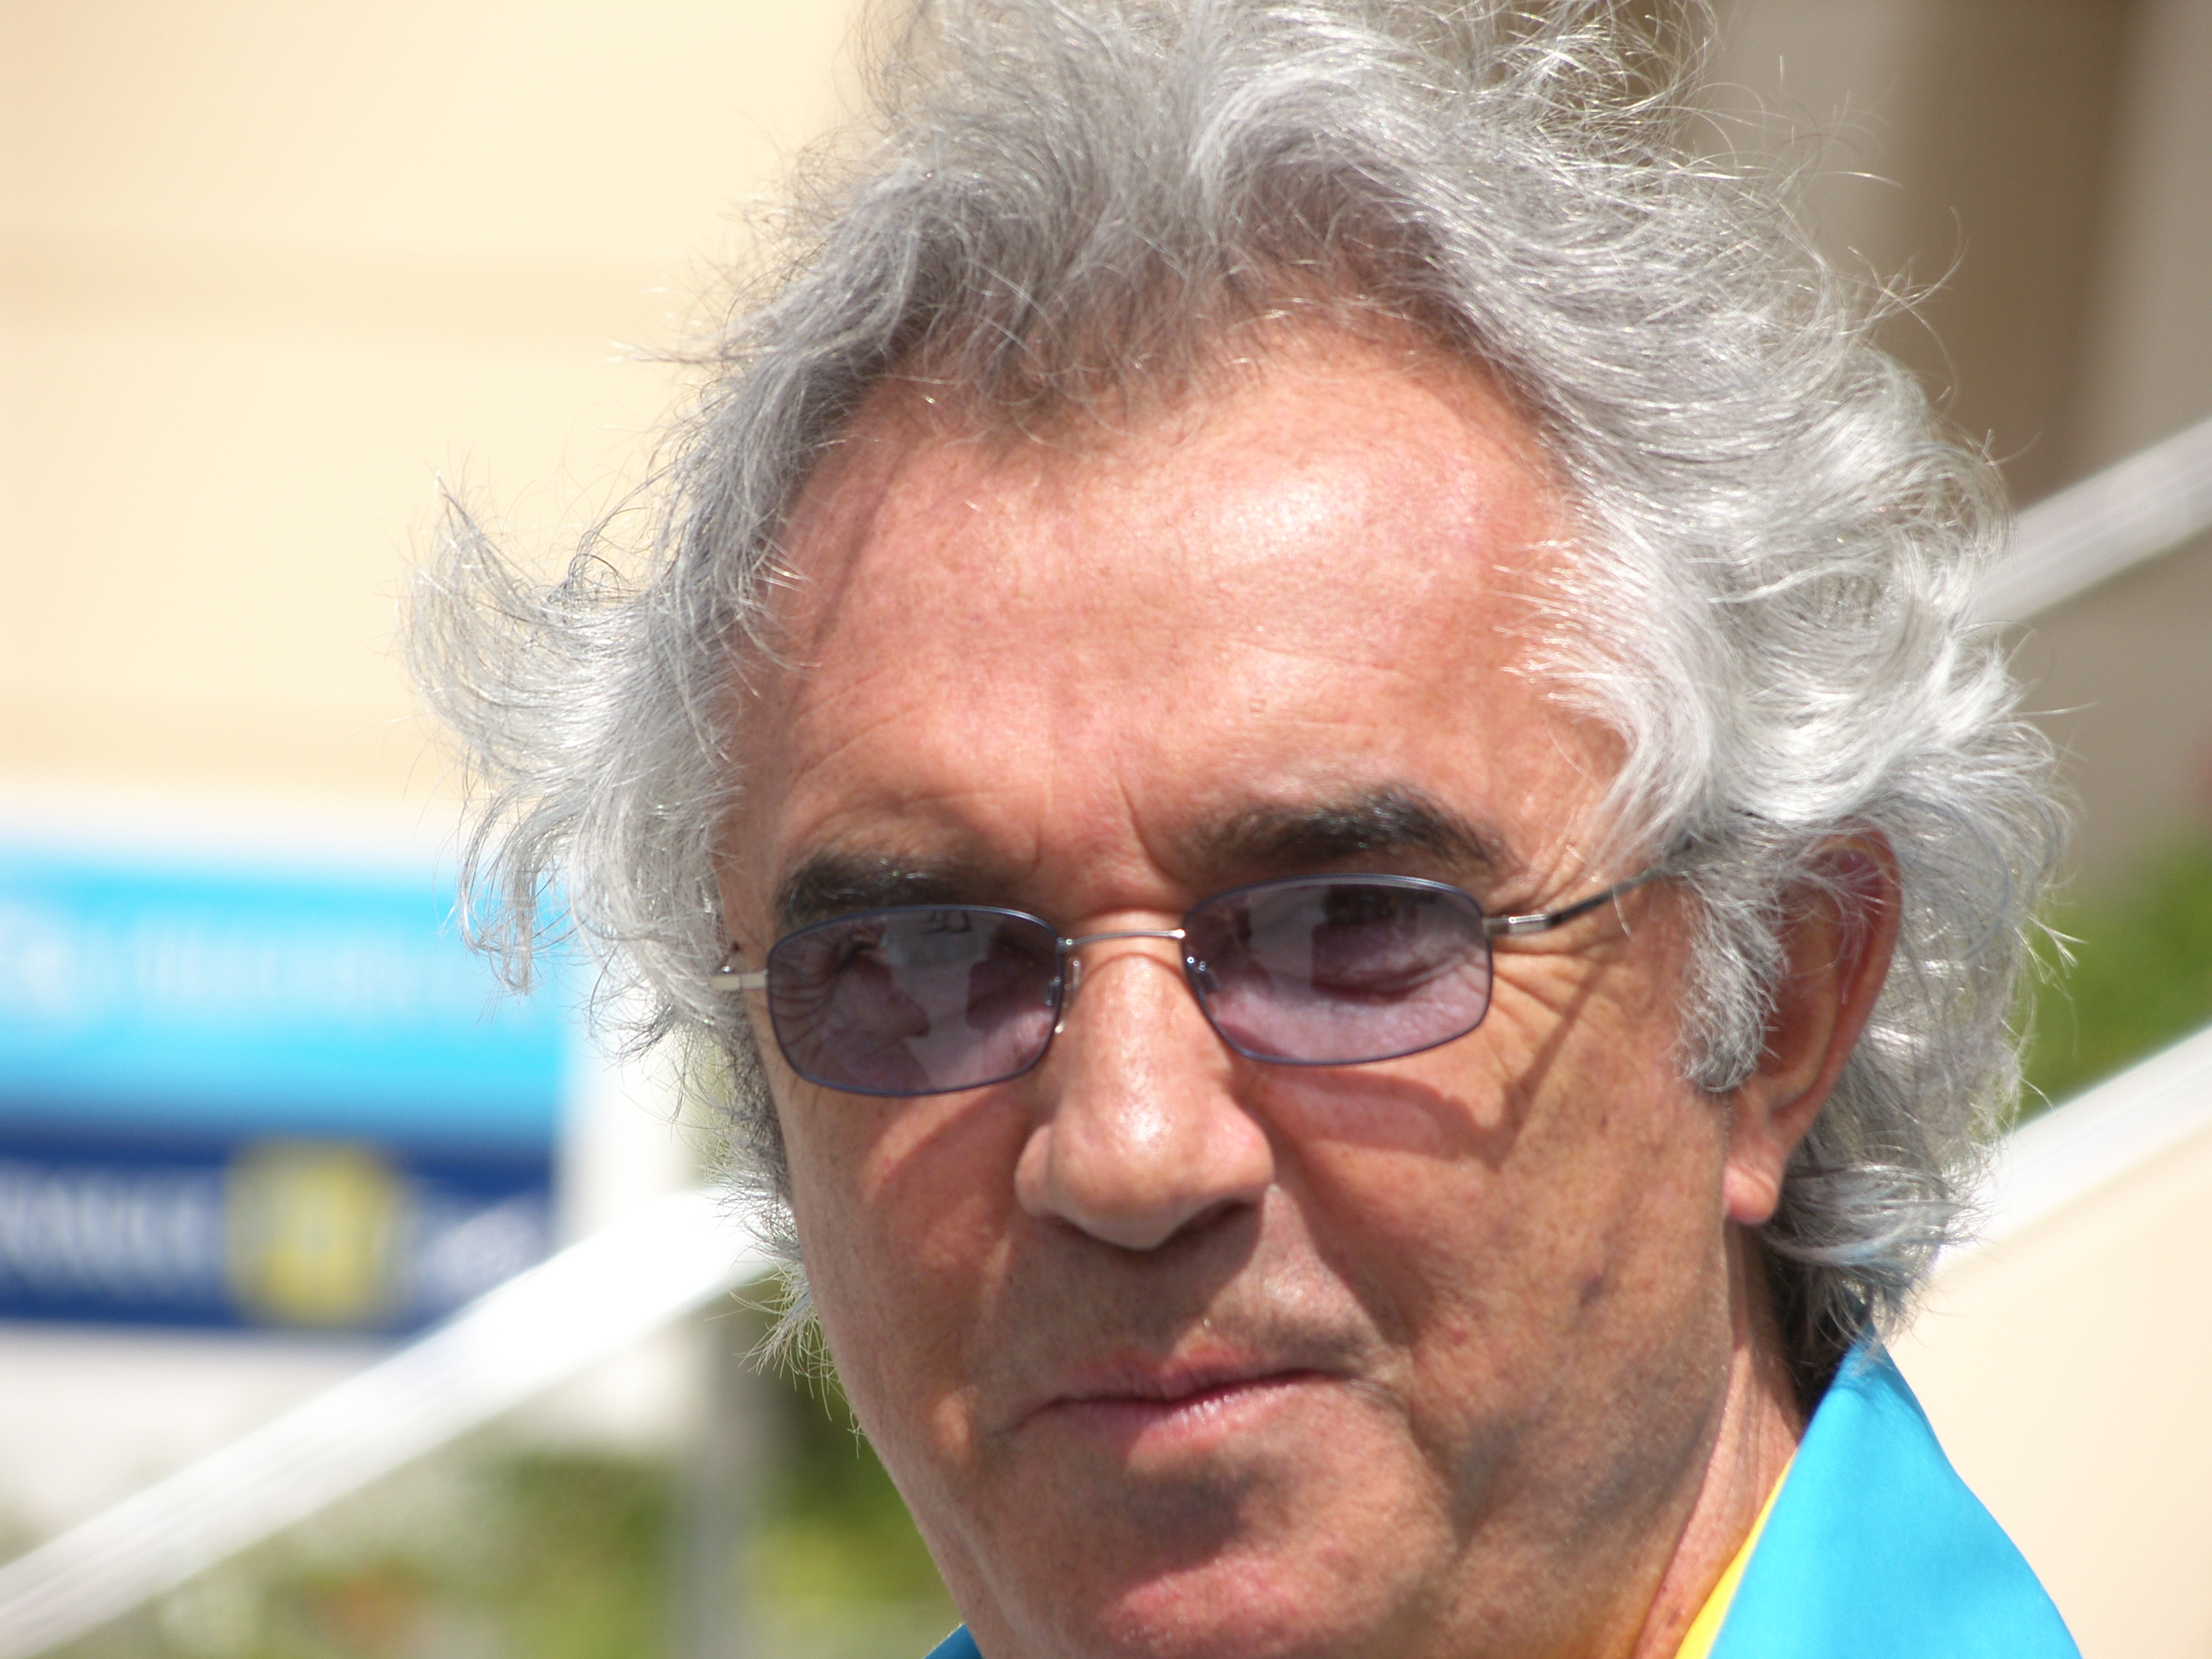 https://i0.wp.com/upload.wikimedia.org/wikipedia/commons/8/8a/Flavio_Briatore.JPG